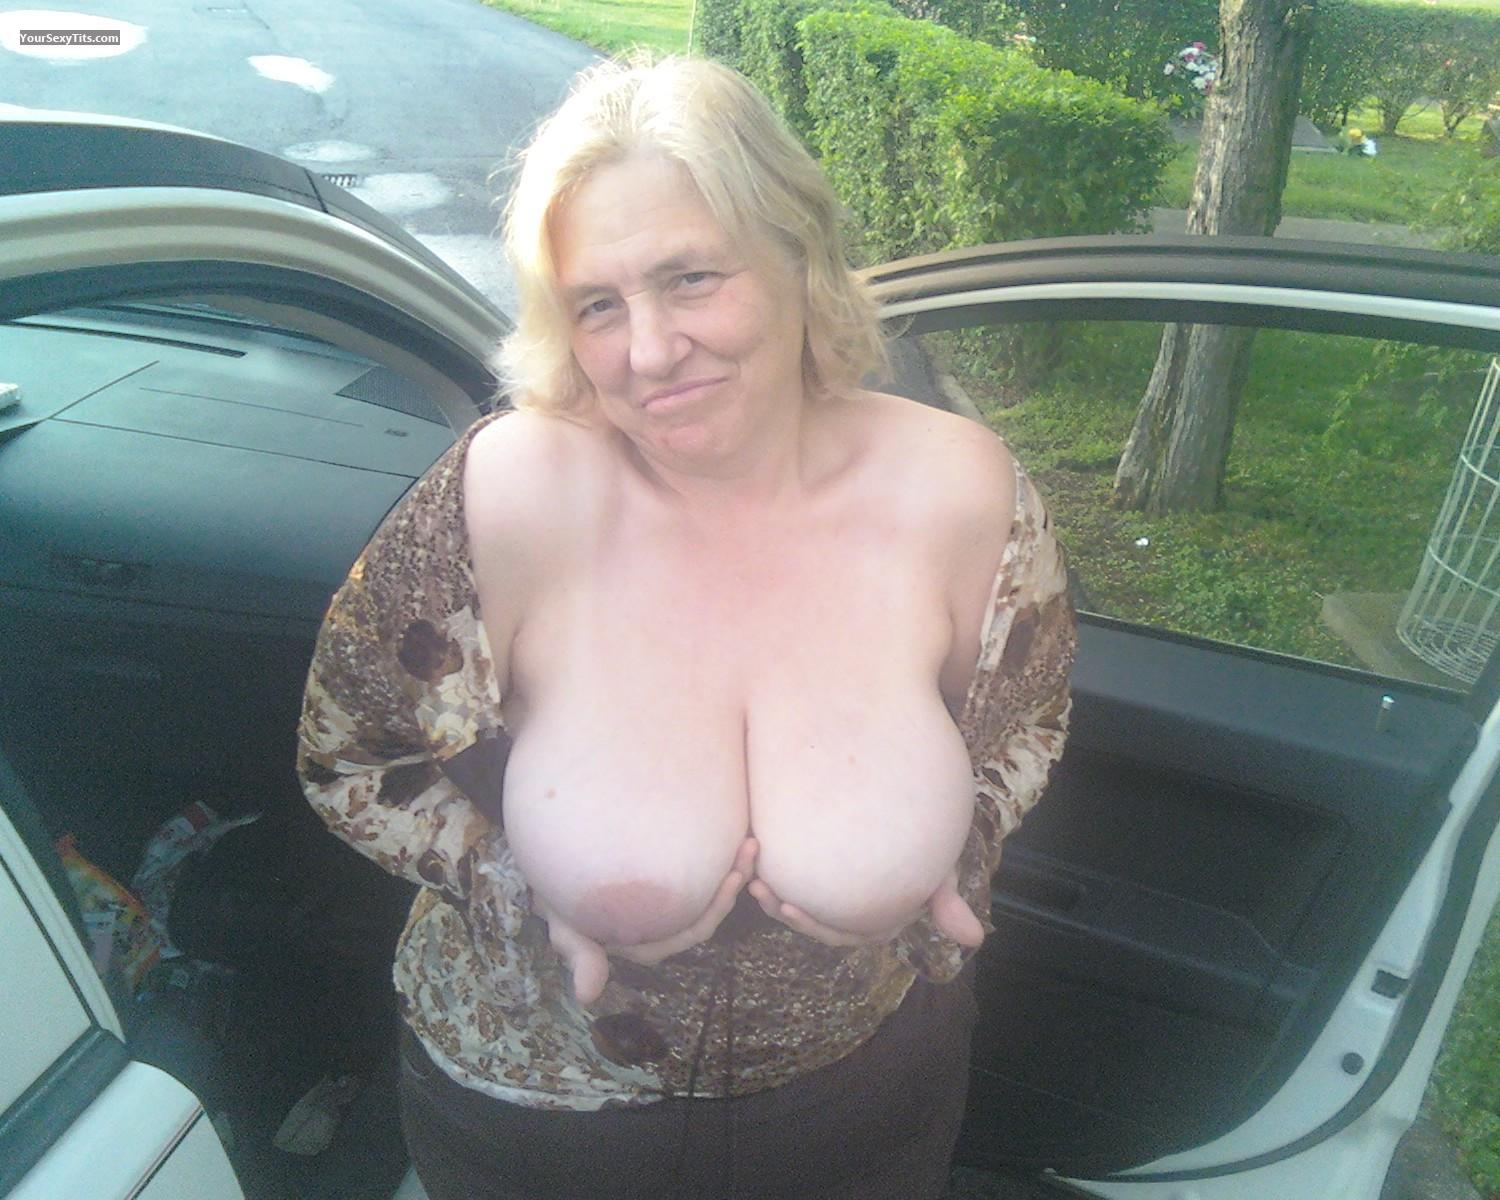 Tit Flash: Big Tits - Topless Big Titties from United States